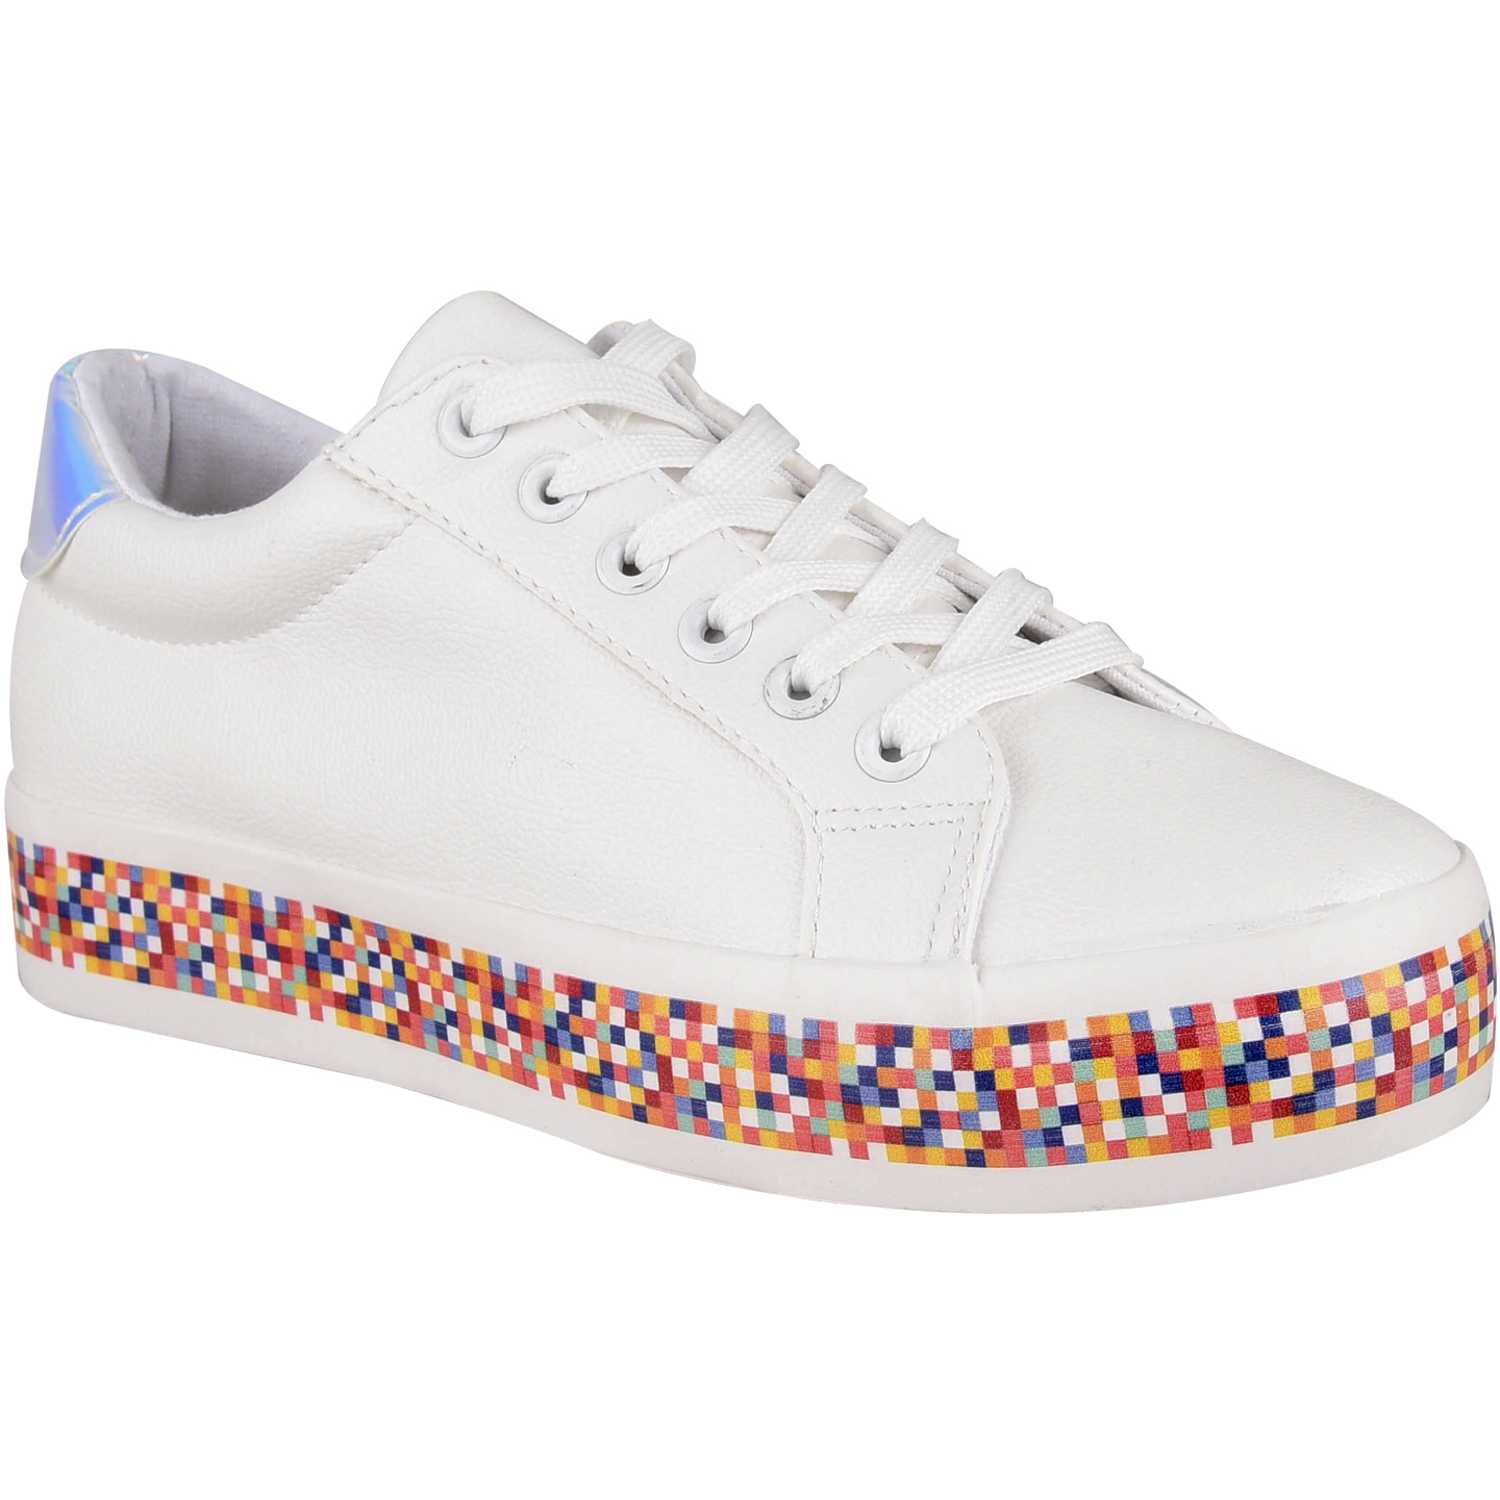 Platanitos zc 2535 Blanco Zapatillas Fashion